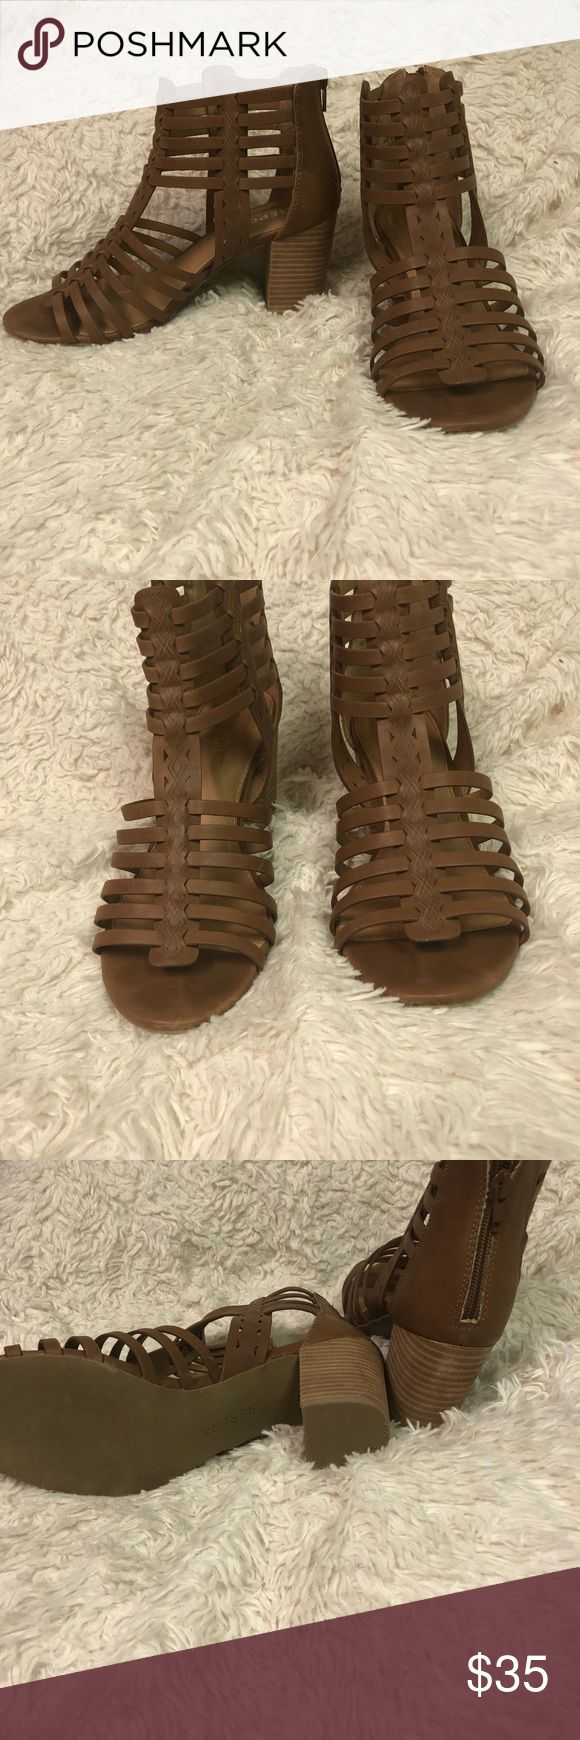 9.5 heeled sandals Only worn once for a wedding. Bought new. Great condition. Report Shoes Sandals